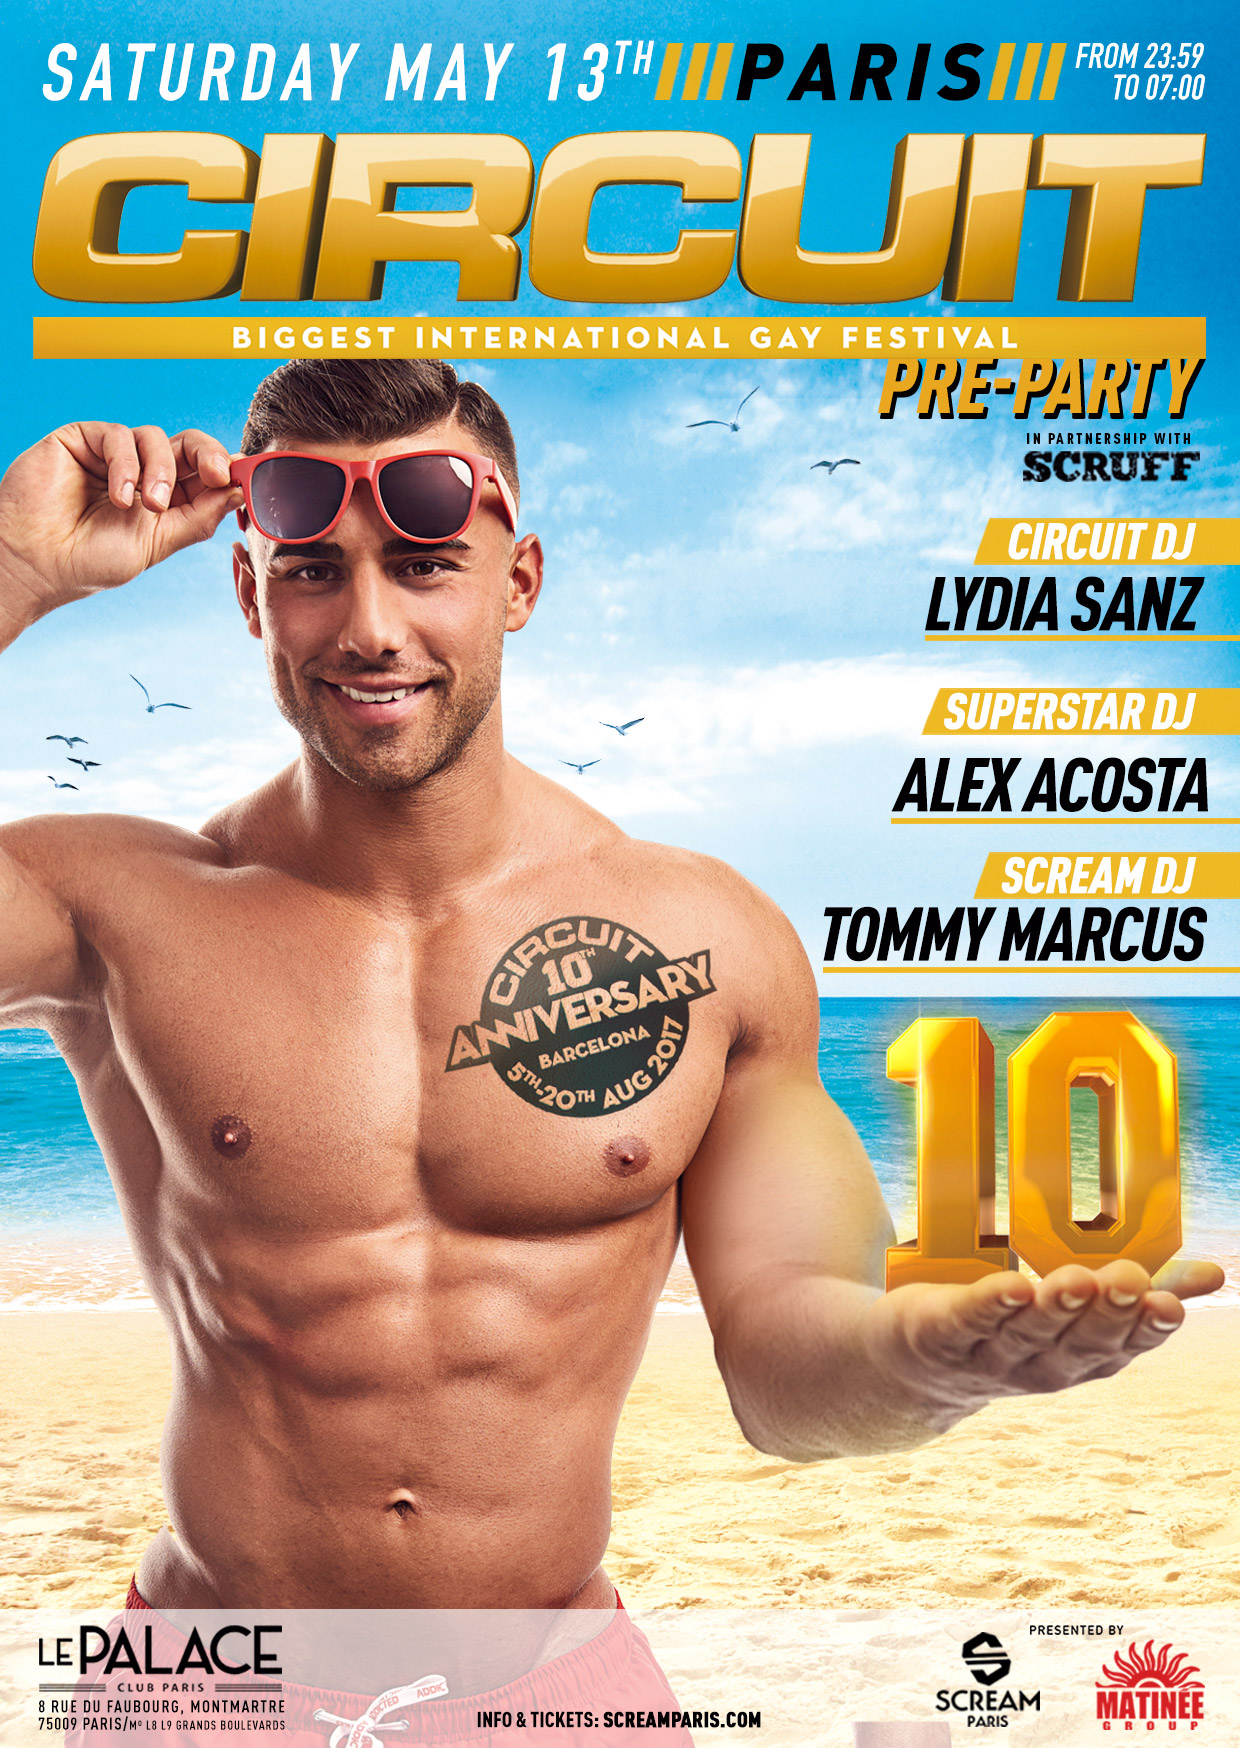 paris-party-gay-matinee-group-circuit-france